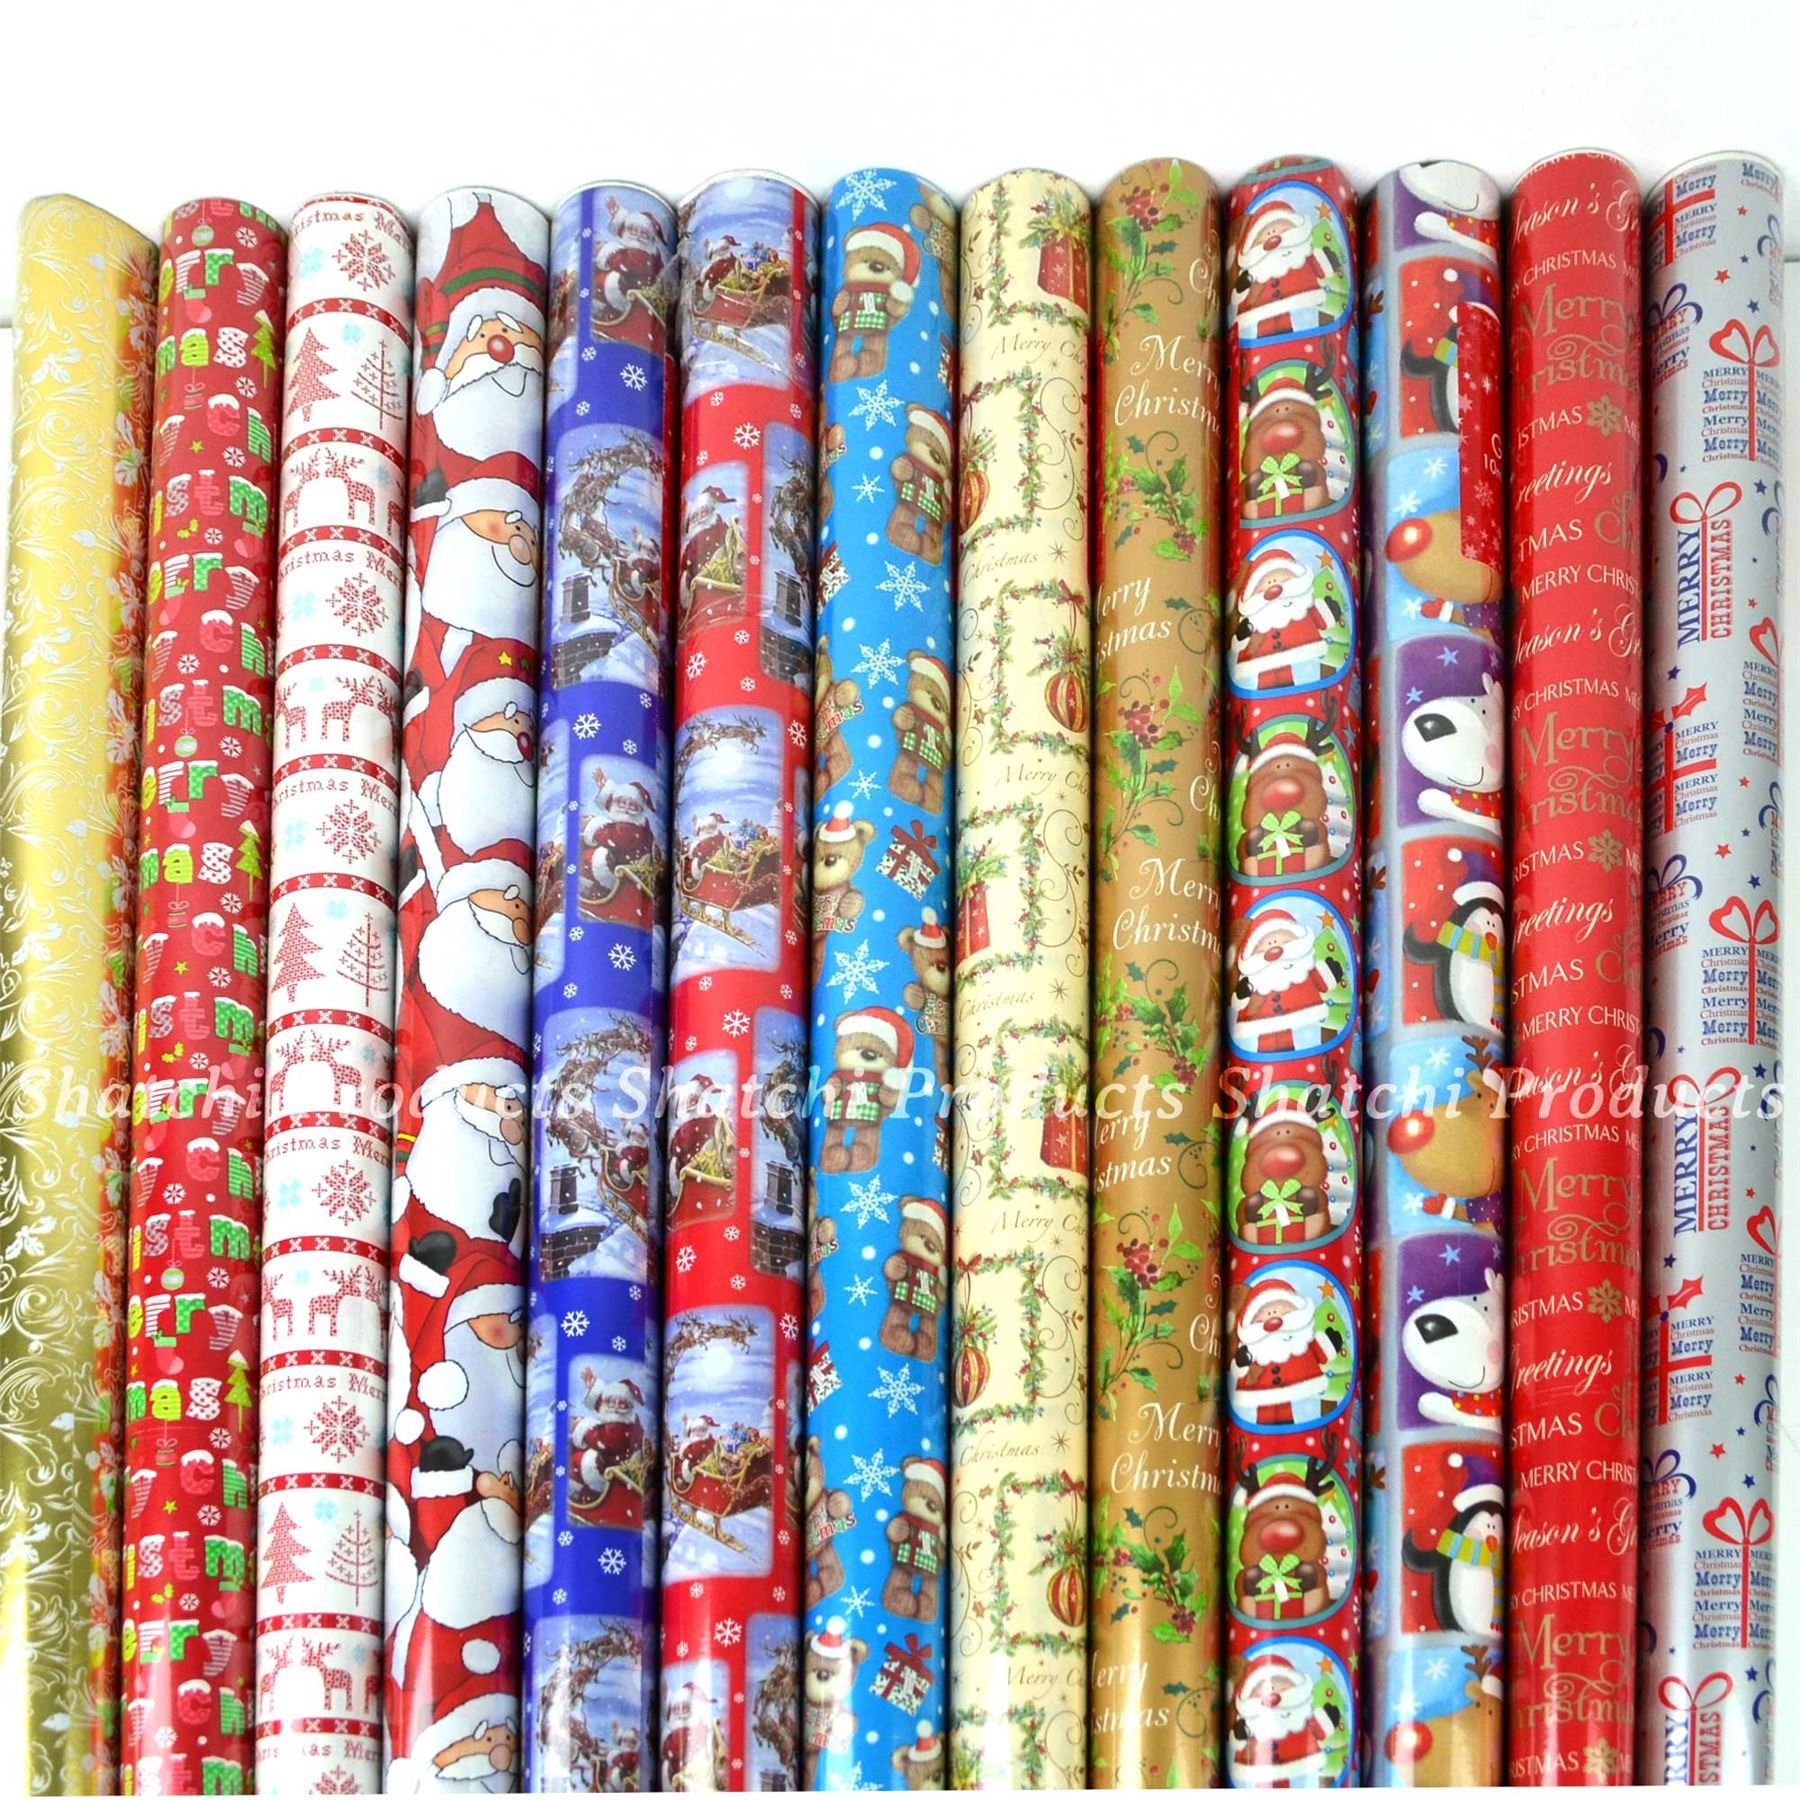 cheap christmas wrapping paper australia From seasonal gift wrapping paper to designs for special occasions and birthdays, there's plenty of choices for creating personalised presents look out for gift wrapping paper that matches party or occasion themes, or take plain tissue paper and gift bags and add your own touches with ribbons, bows and tags.